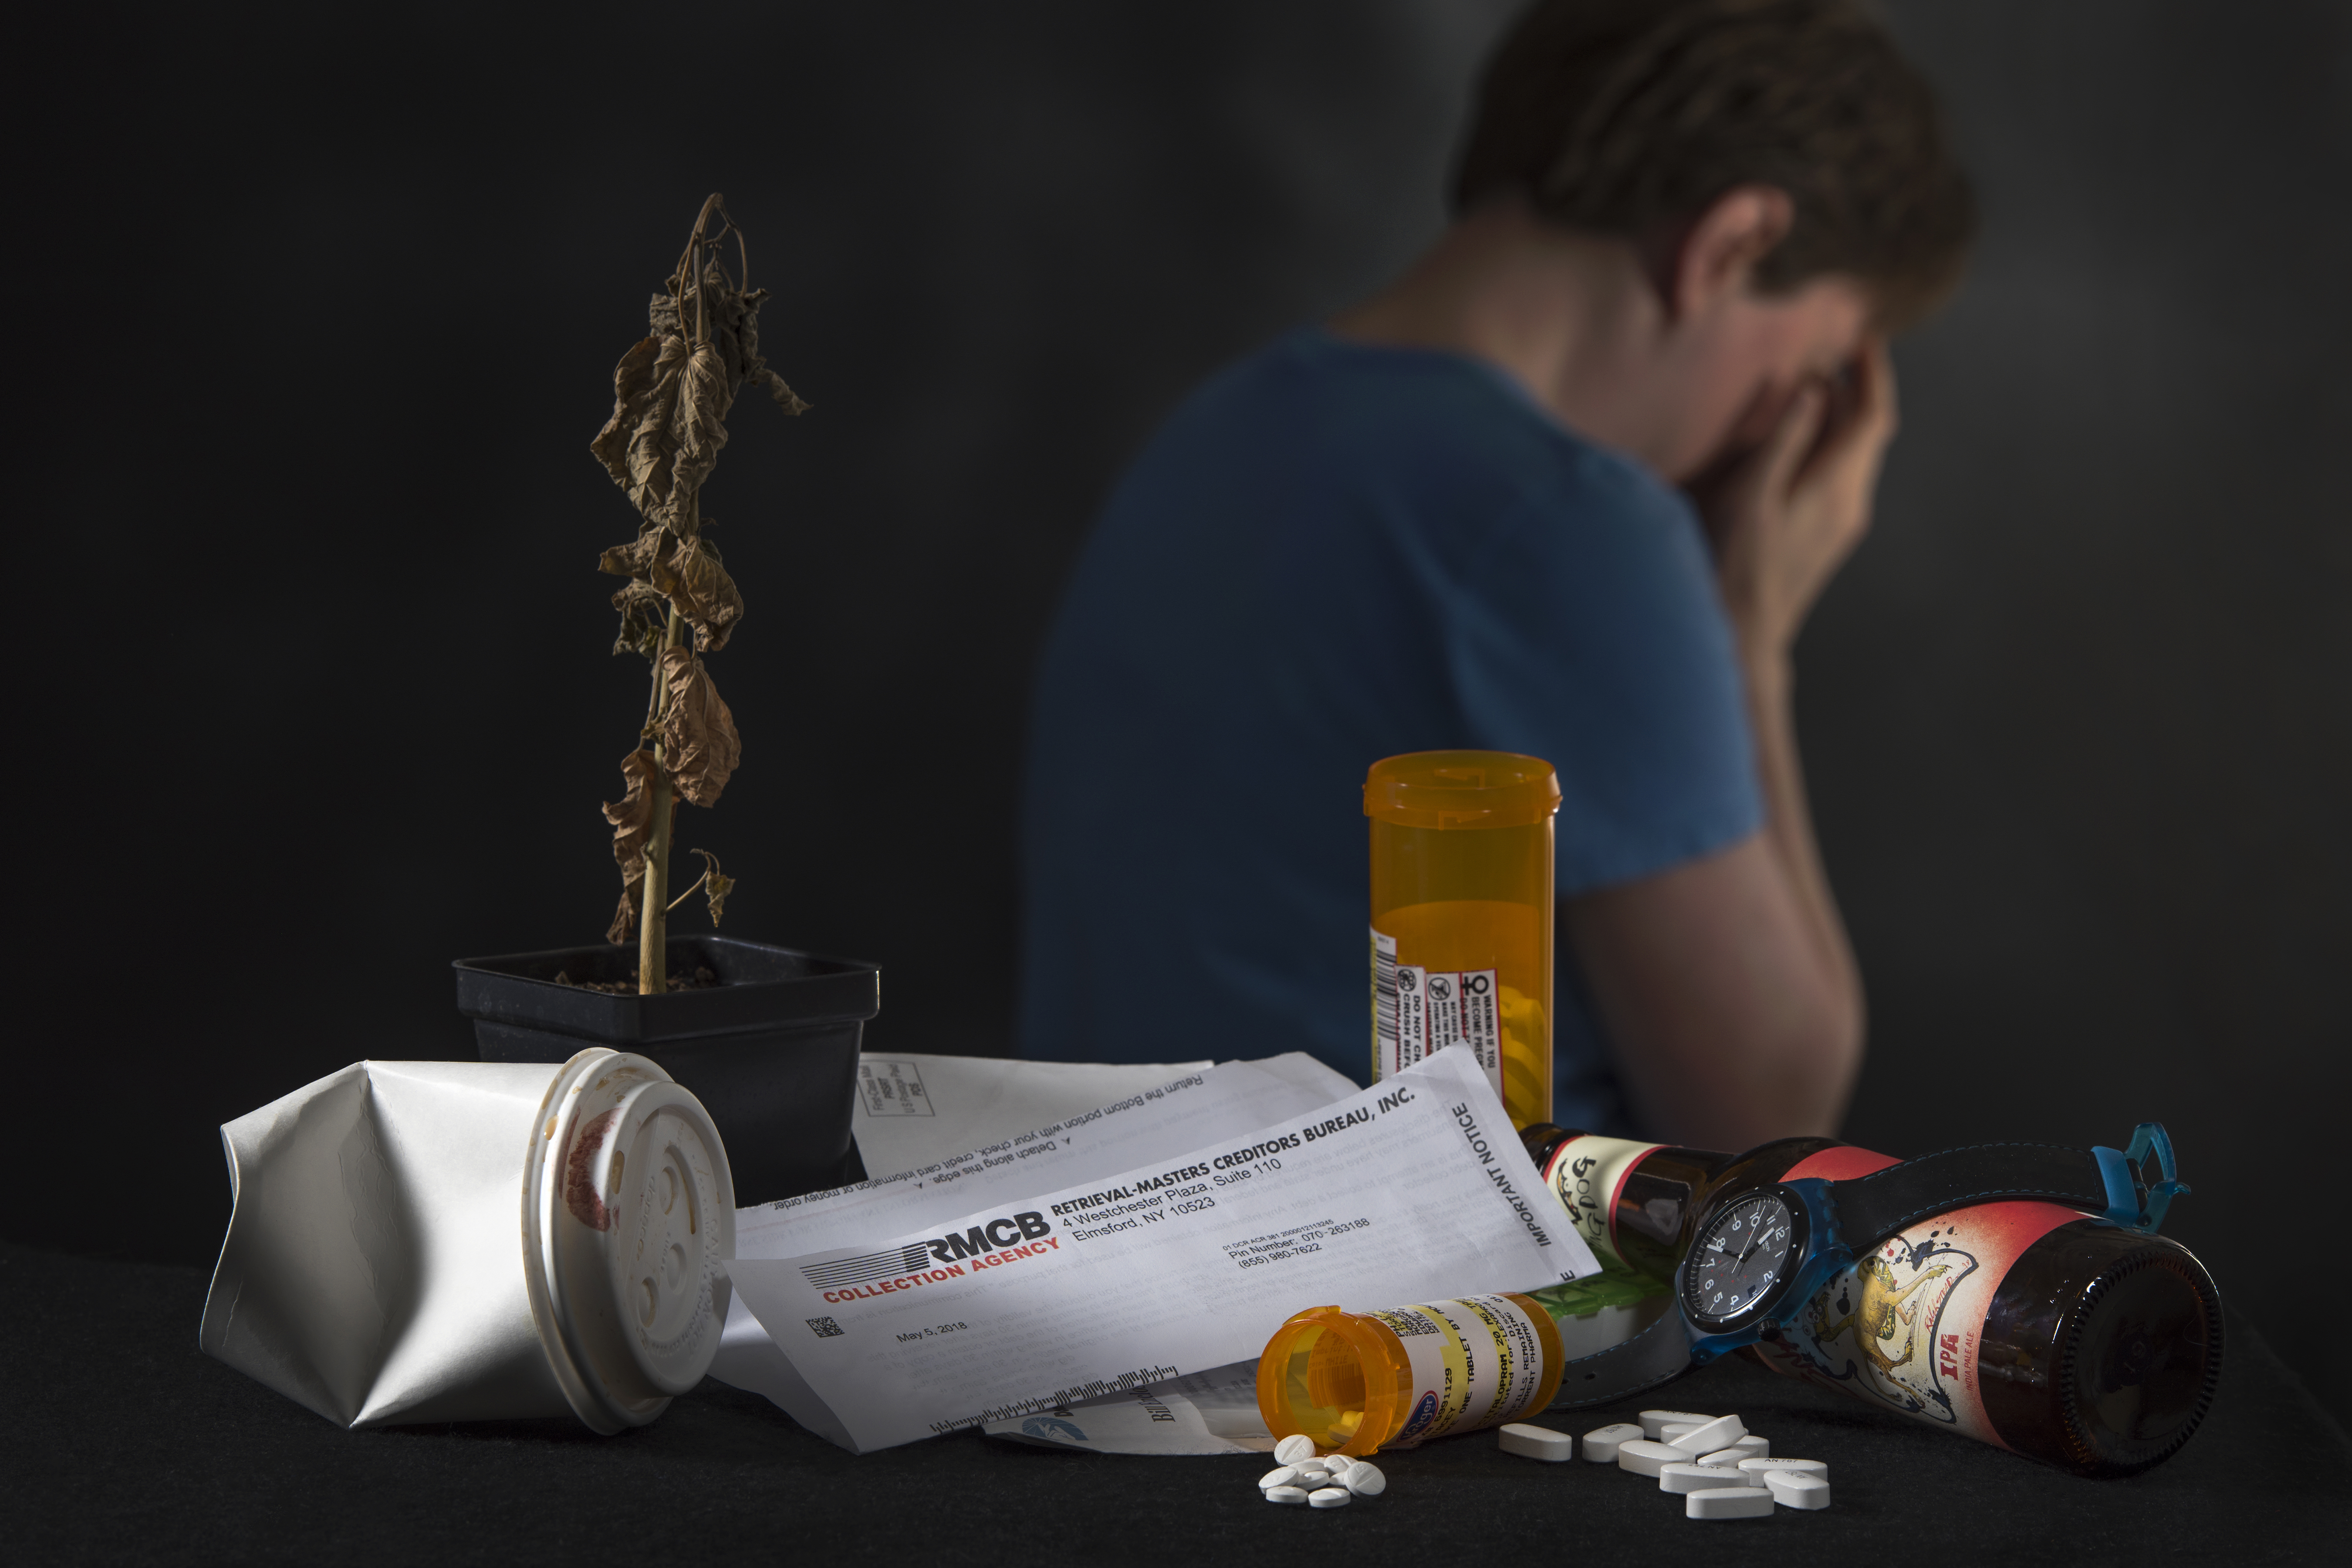 A man sits with his face in hands, his back to a pile of mail and an opened pill bottle